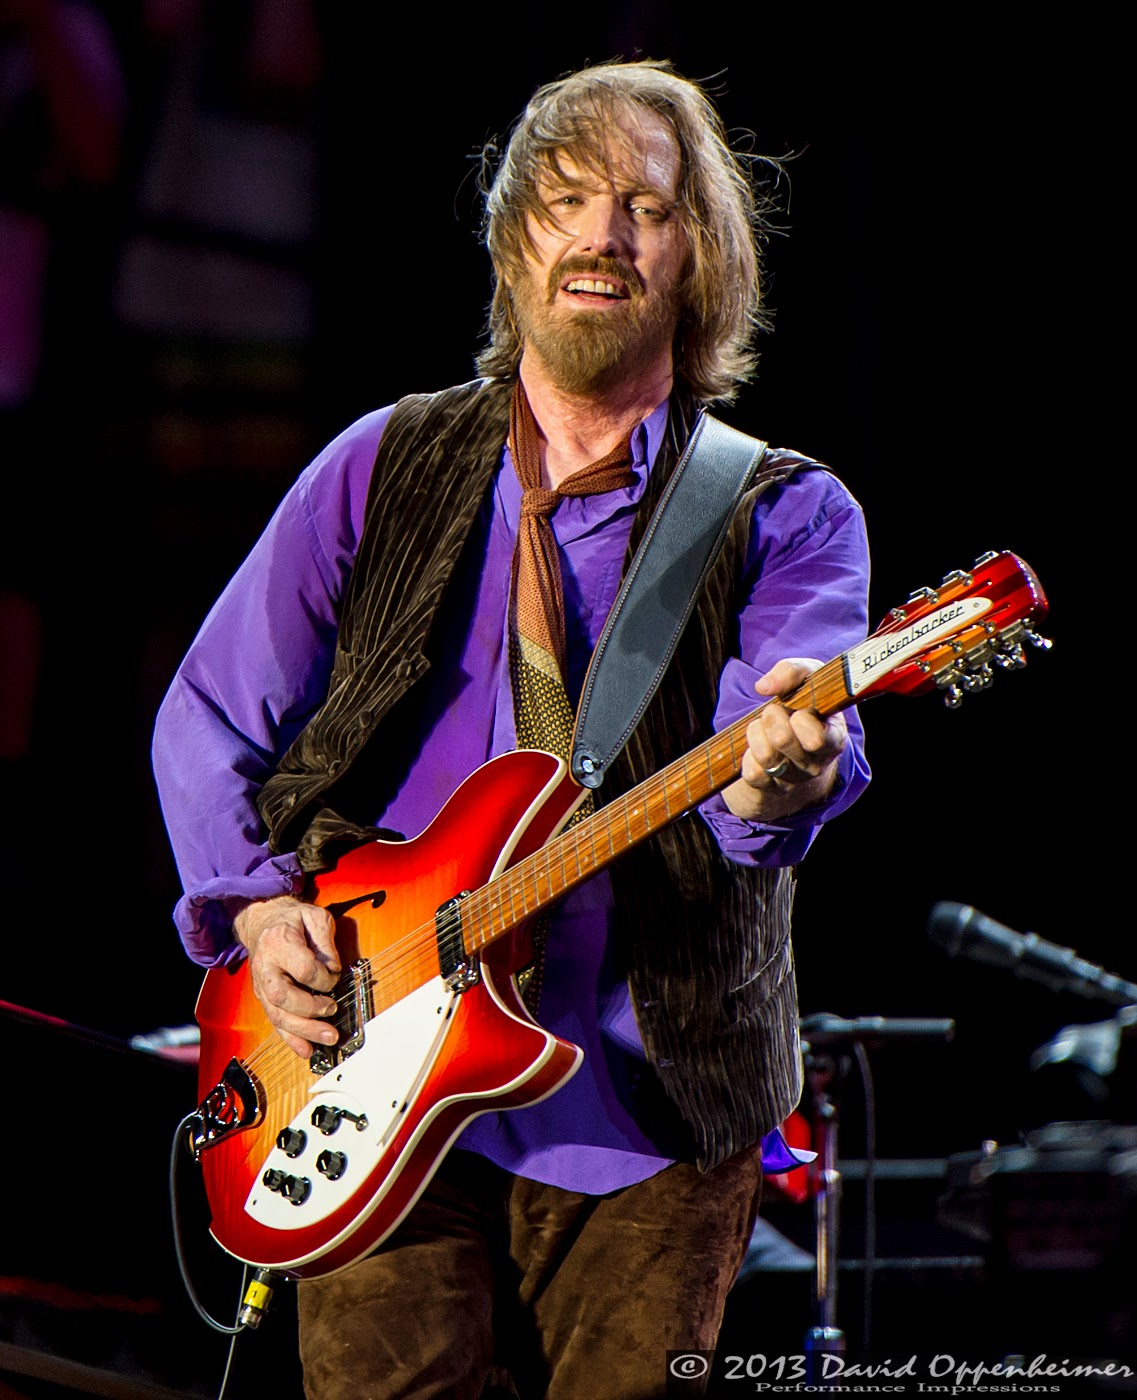 Tom petty and the heartbreakers headline the hangout concert photos